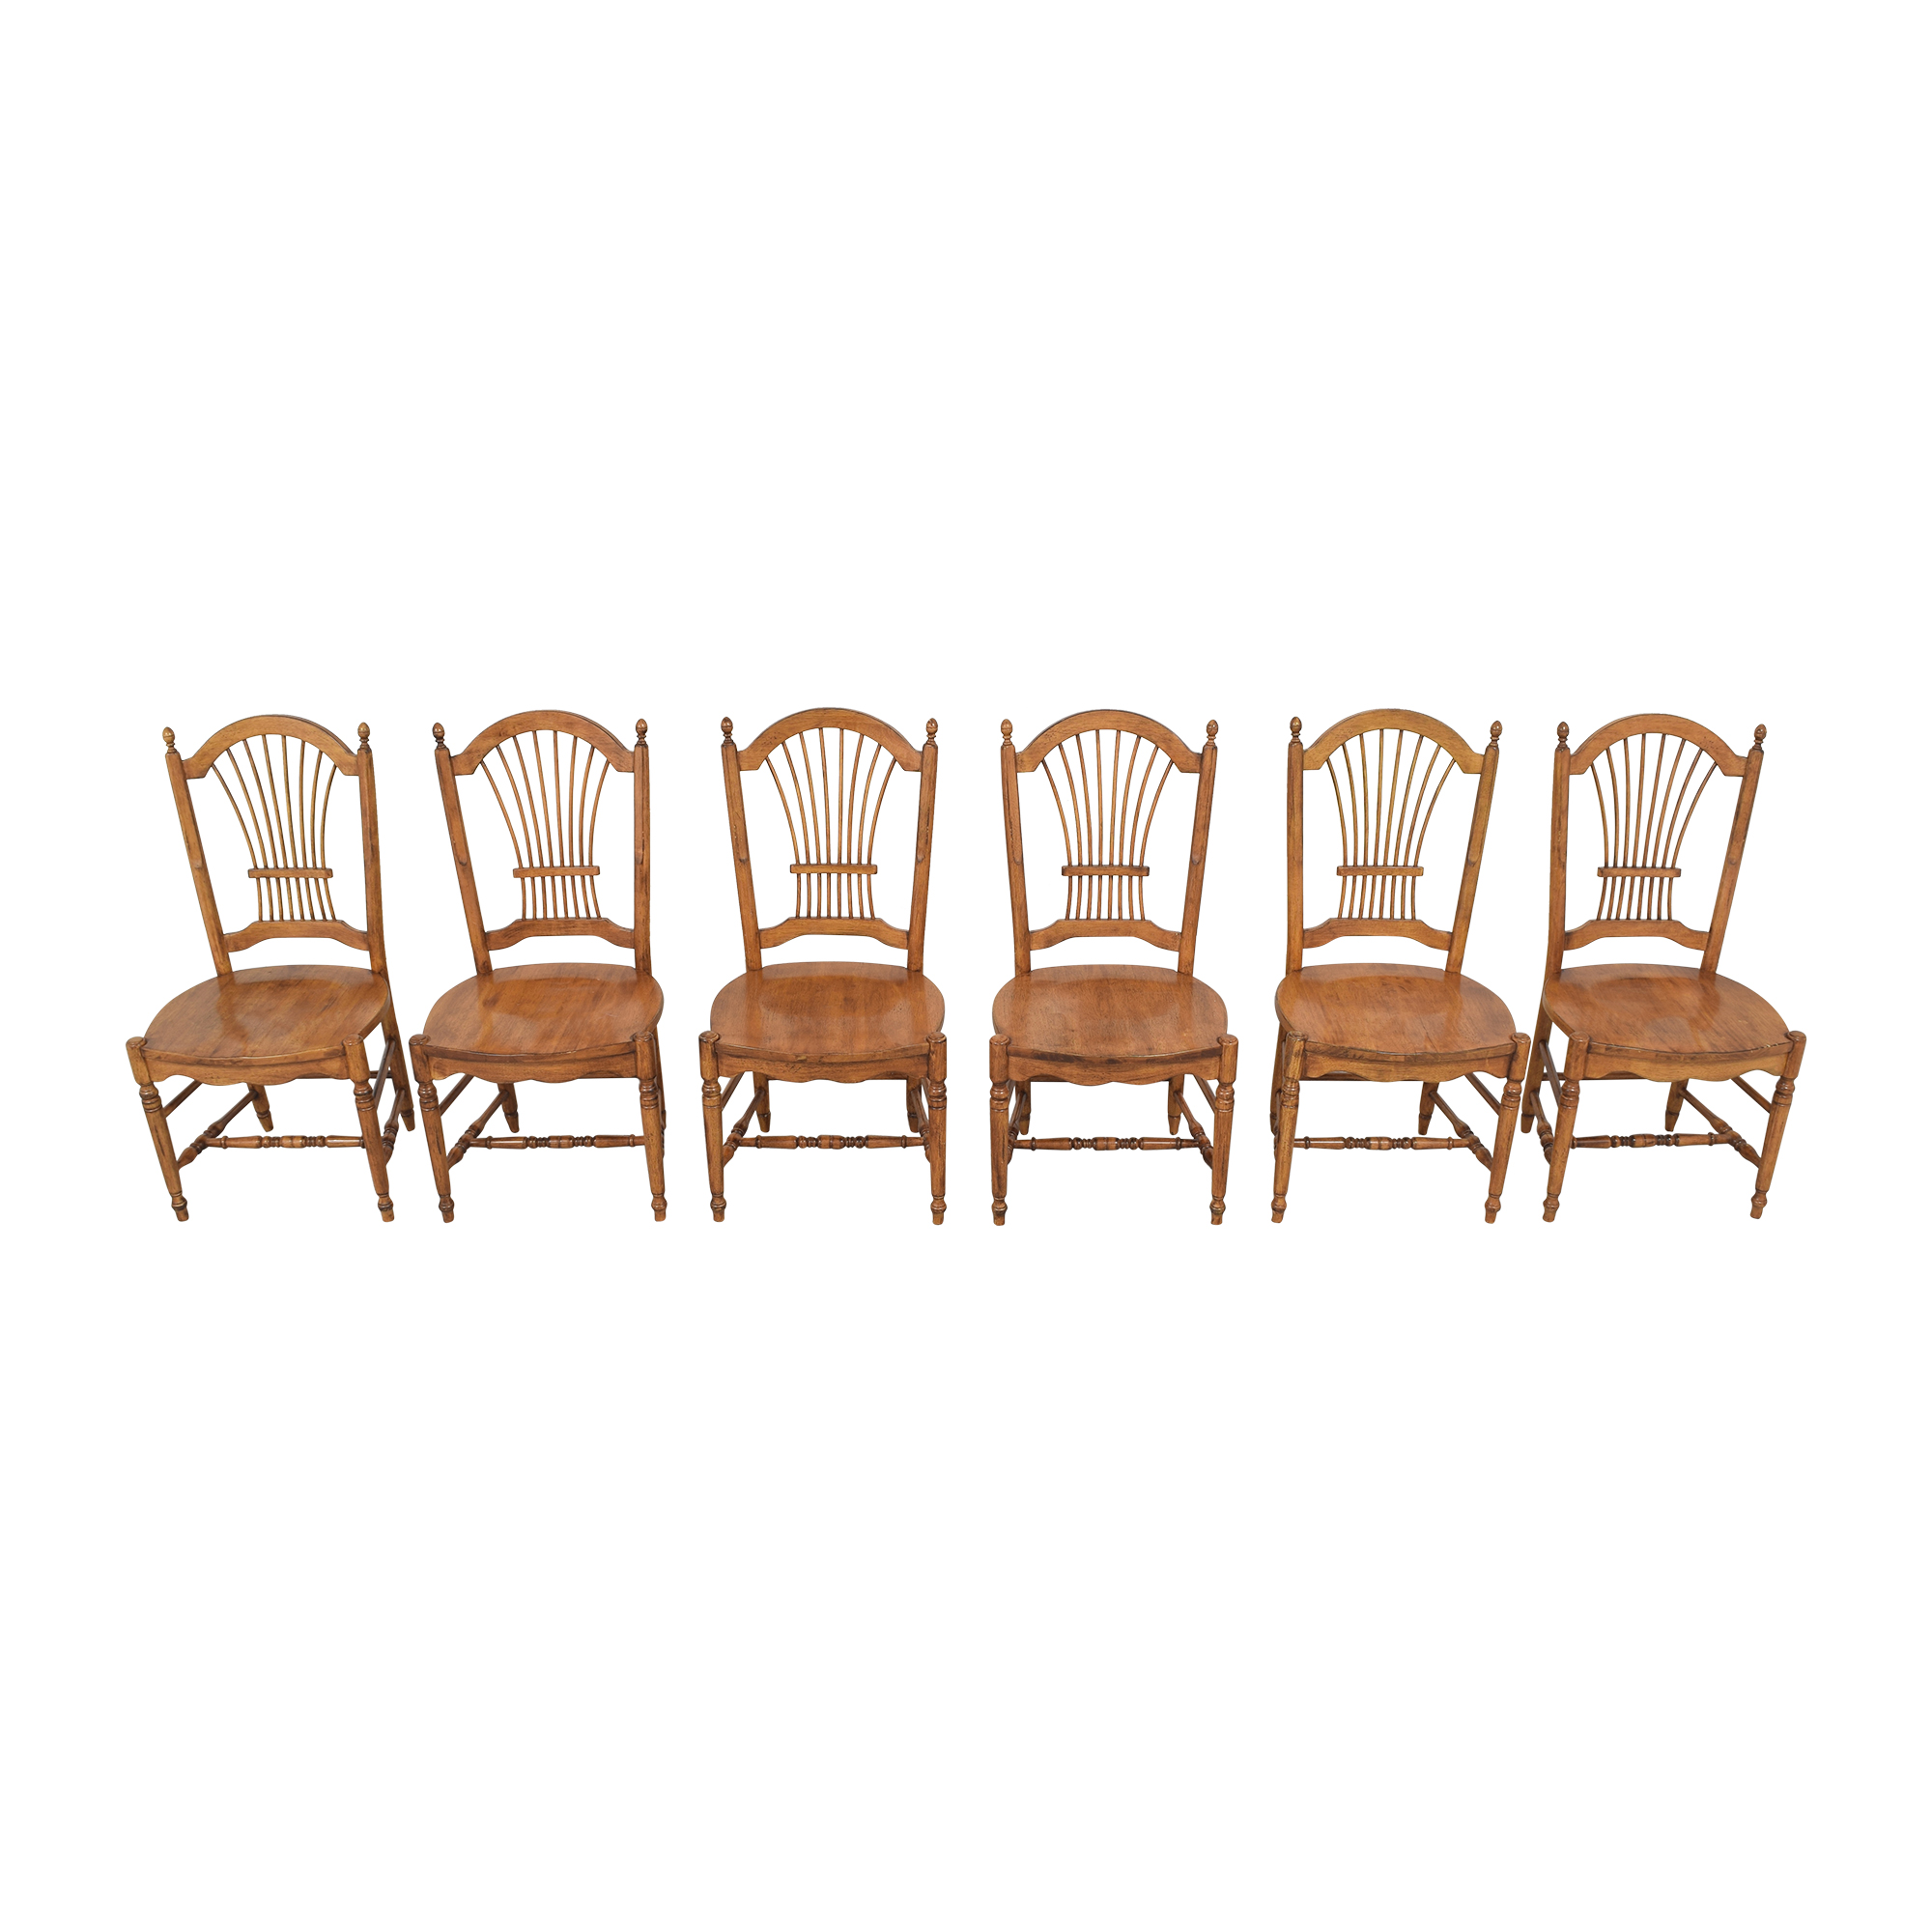 Drexel Drexel Sheaf Back Dining Chairs used